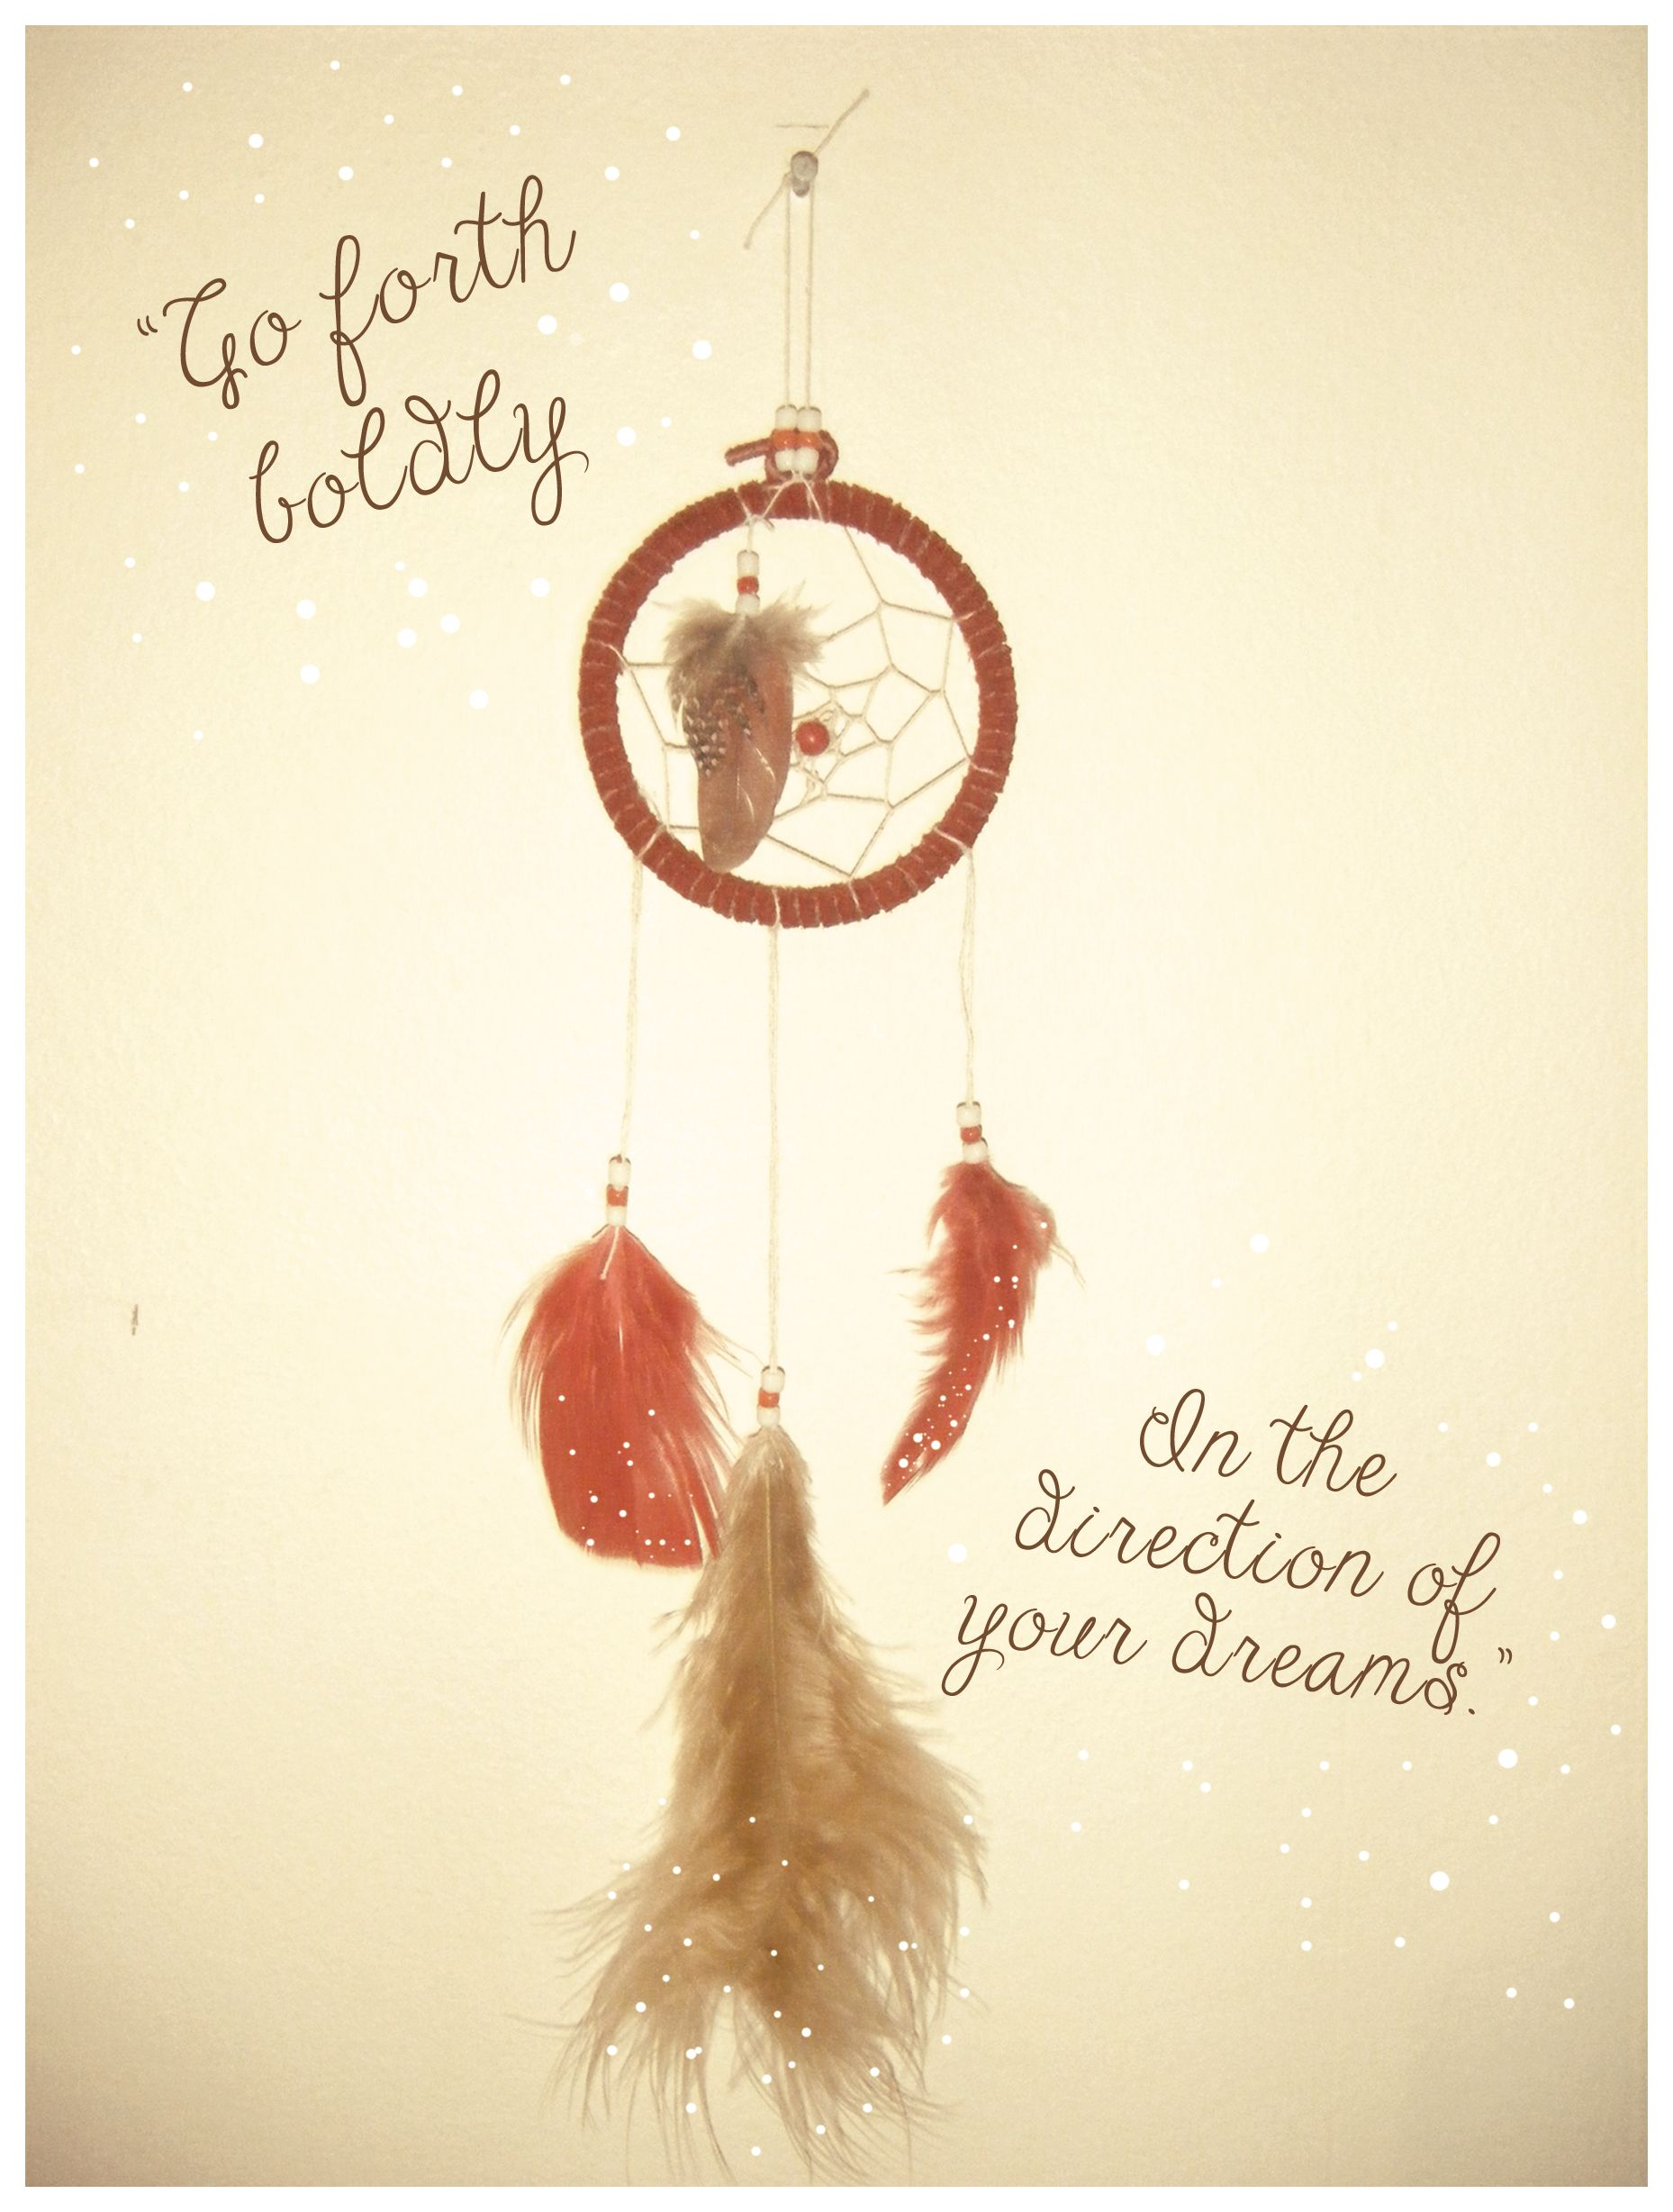 Quotes About Dream Catcher Dreamcatcher Drawing With Quote DreamFeatherTree Pinterest 16